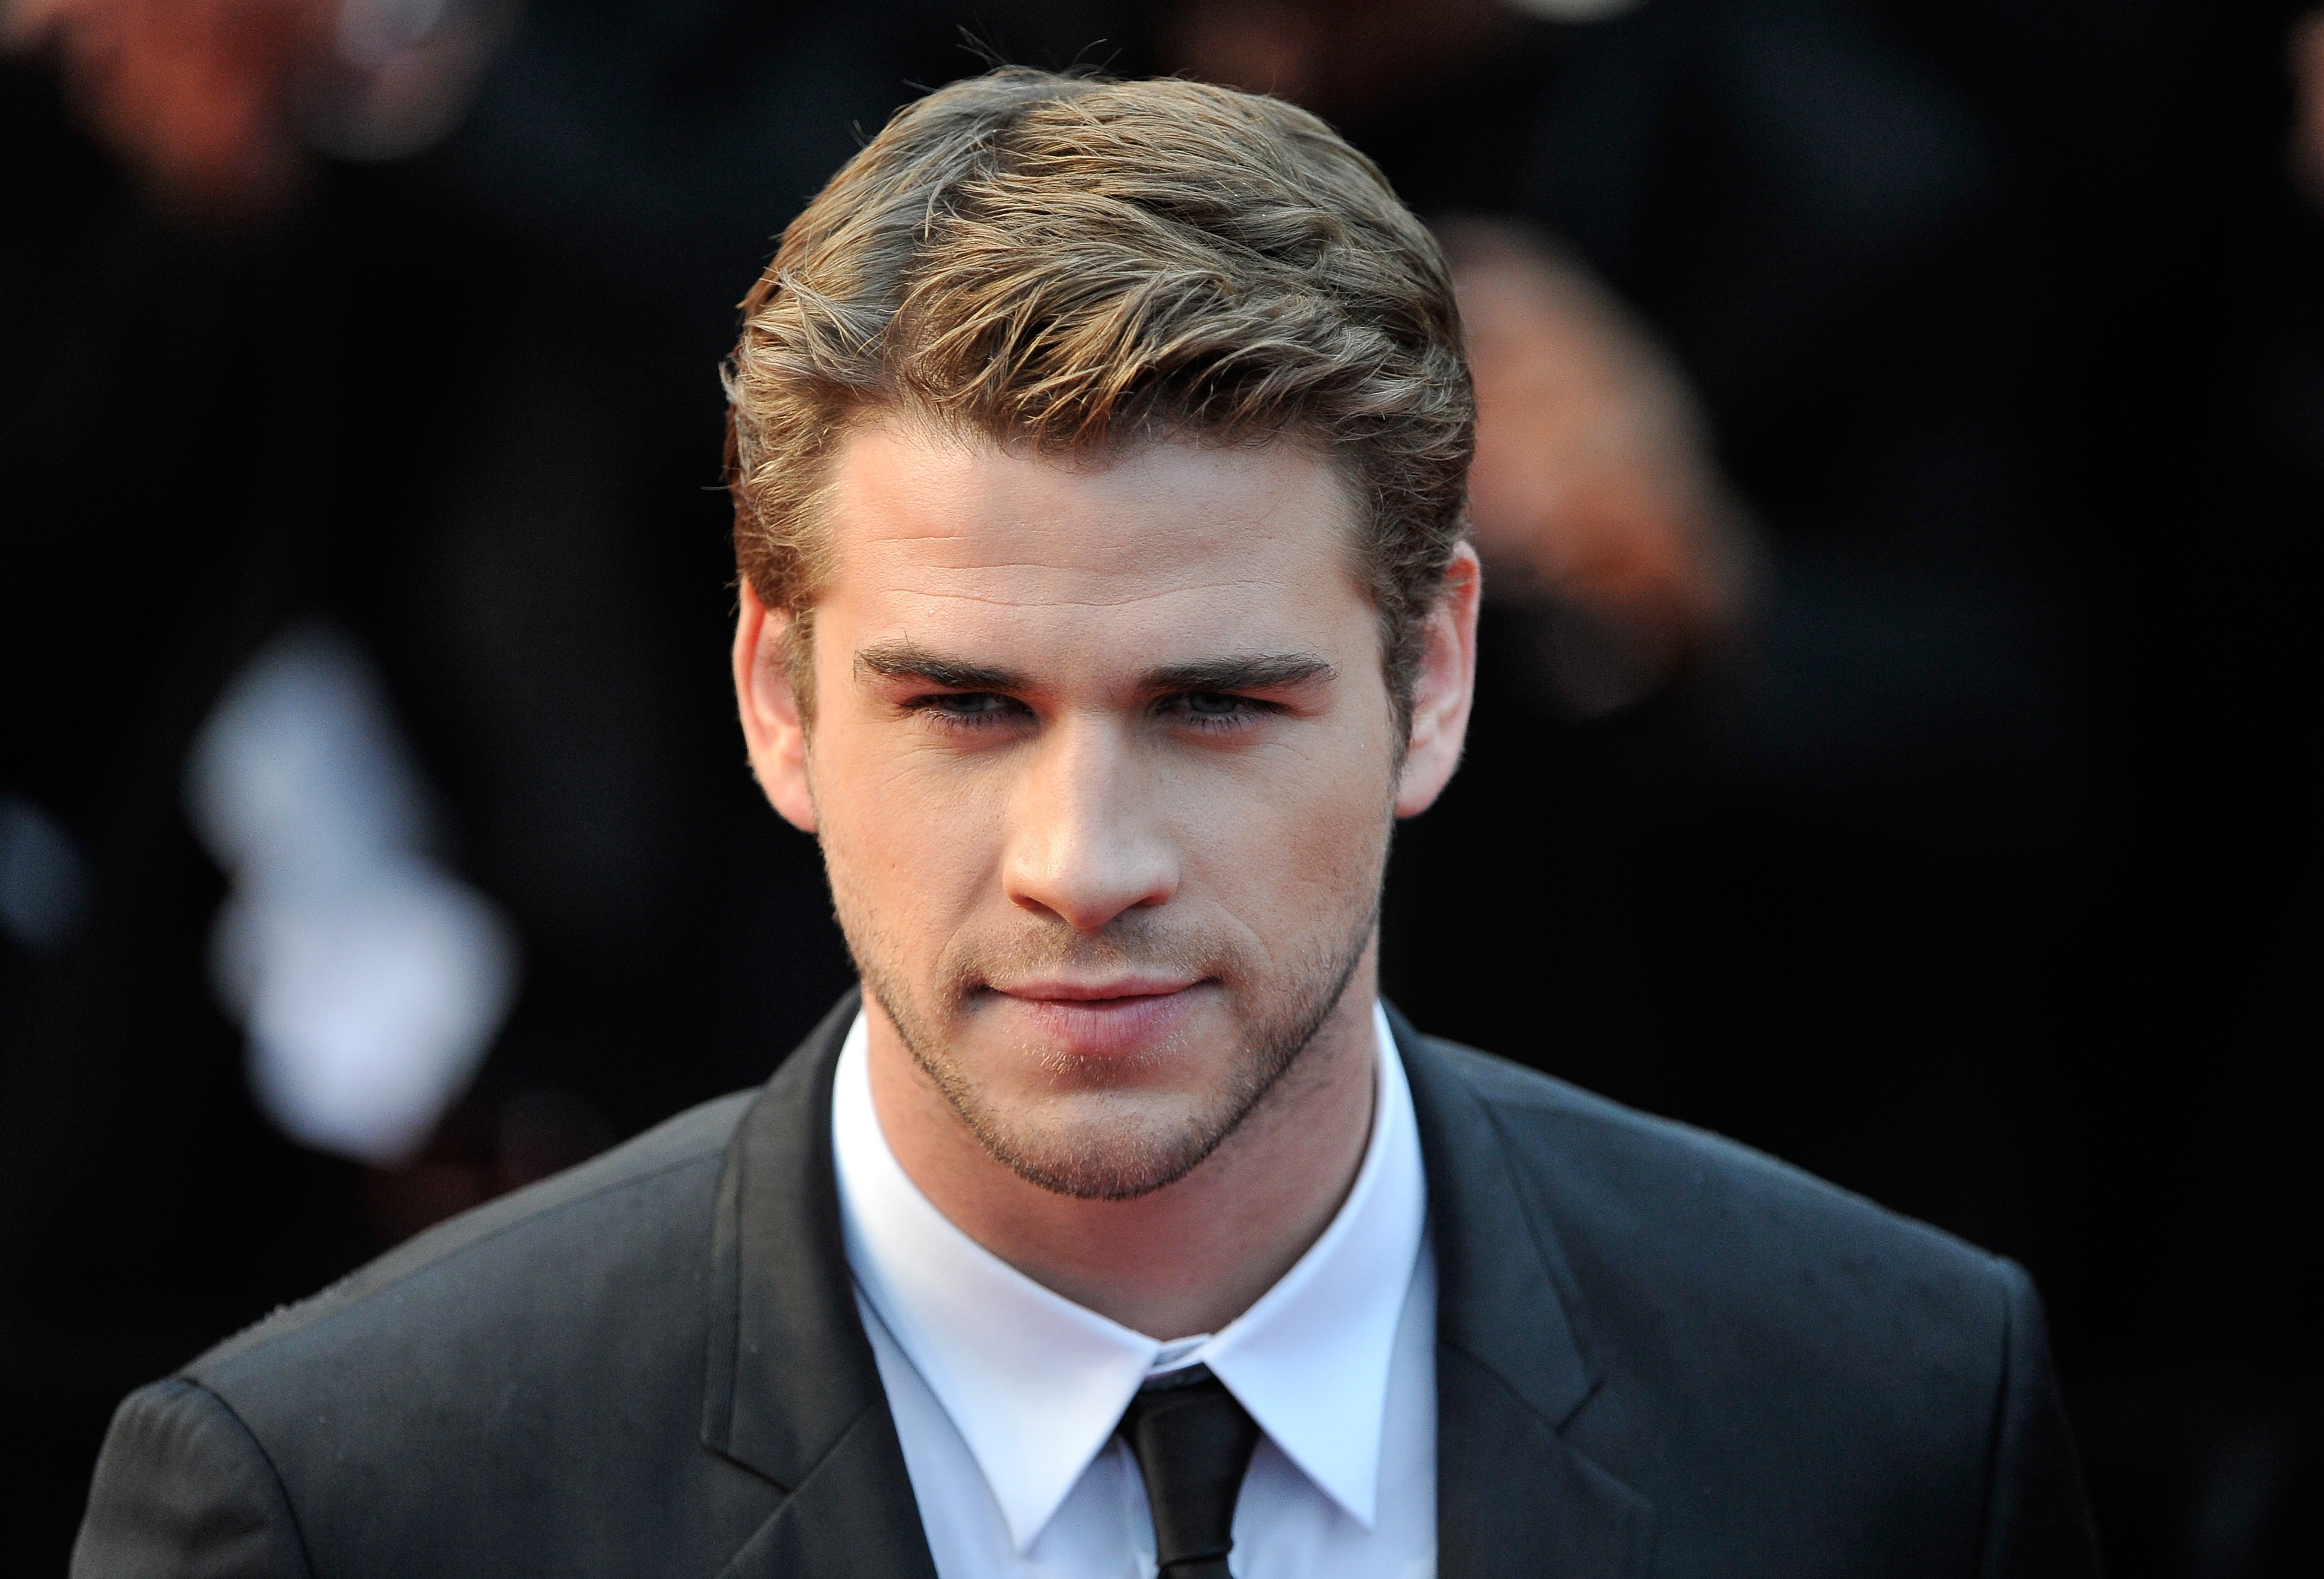 Liam Hemsworth photo, pics, wallpaper - photo #